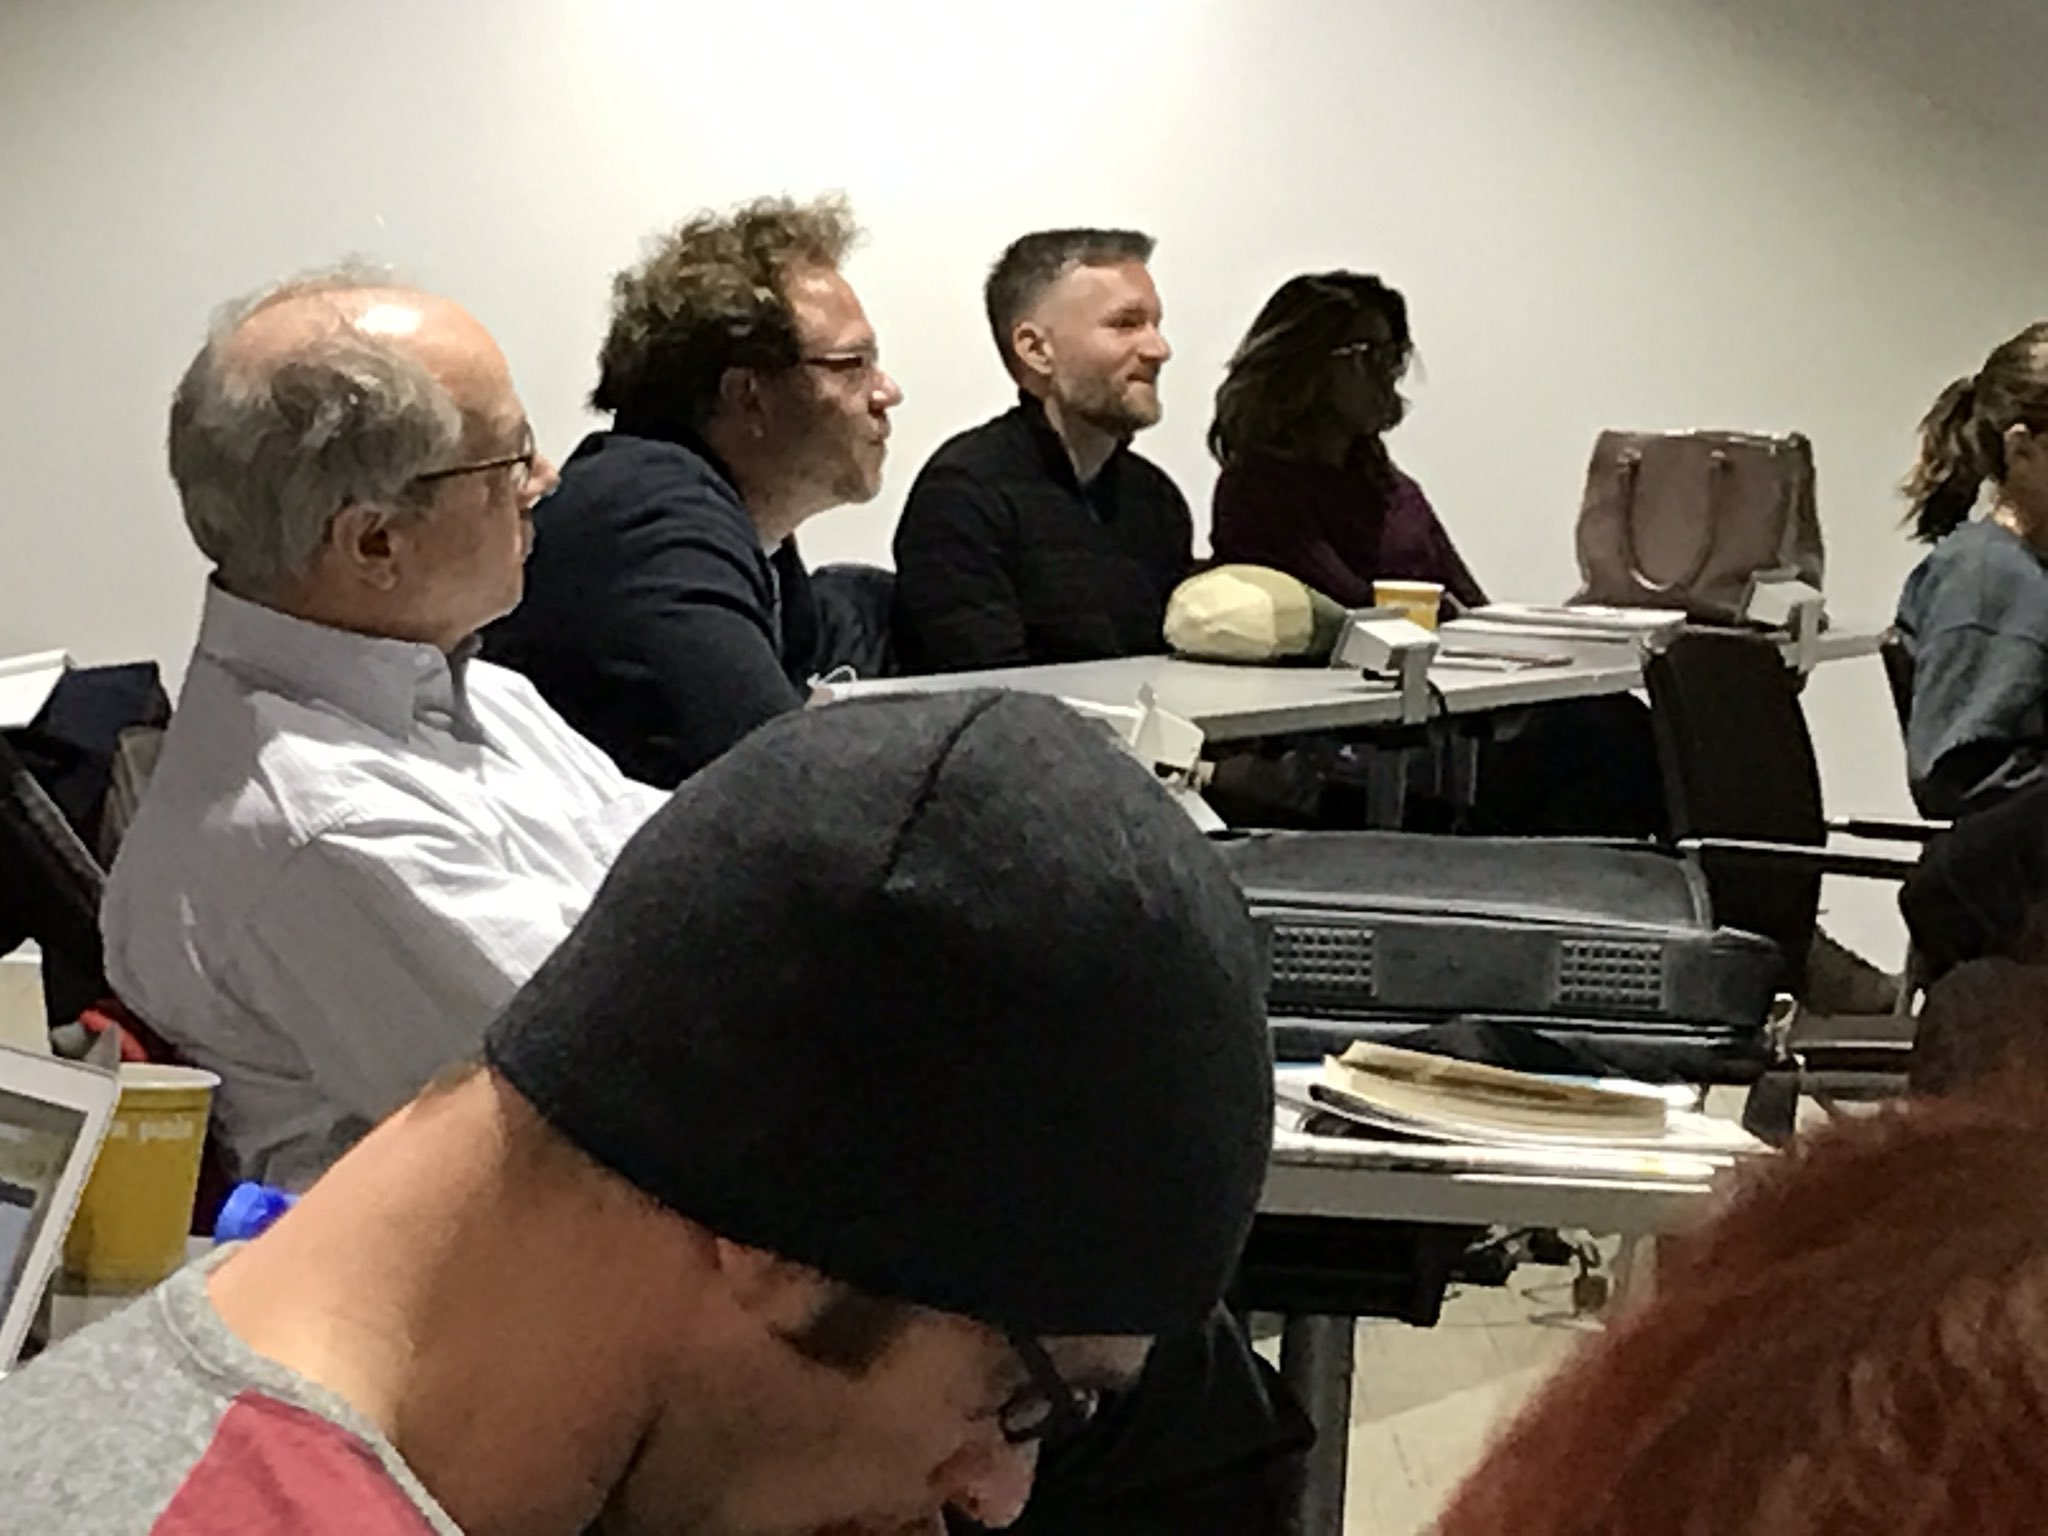 """Botelho fields question about translating """"the untranslatable"""" in Chaucer and Shakespeare from @periphrast #gwdh17 https://t.co/8ClWBPUxcW"""